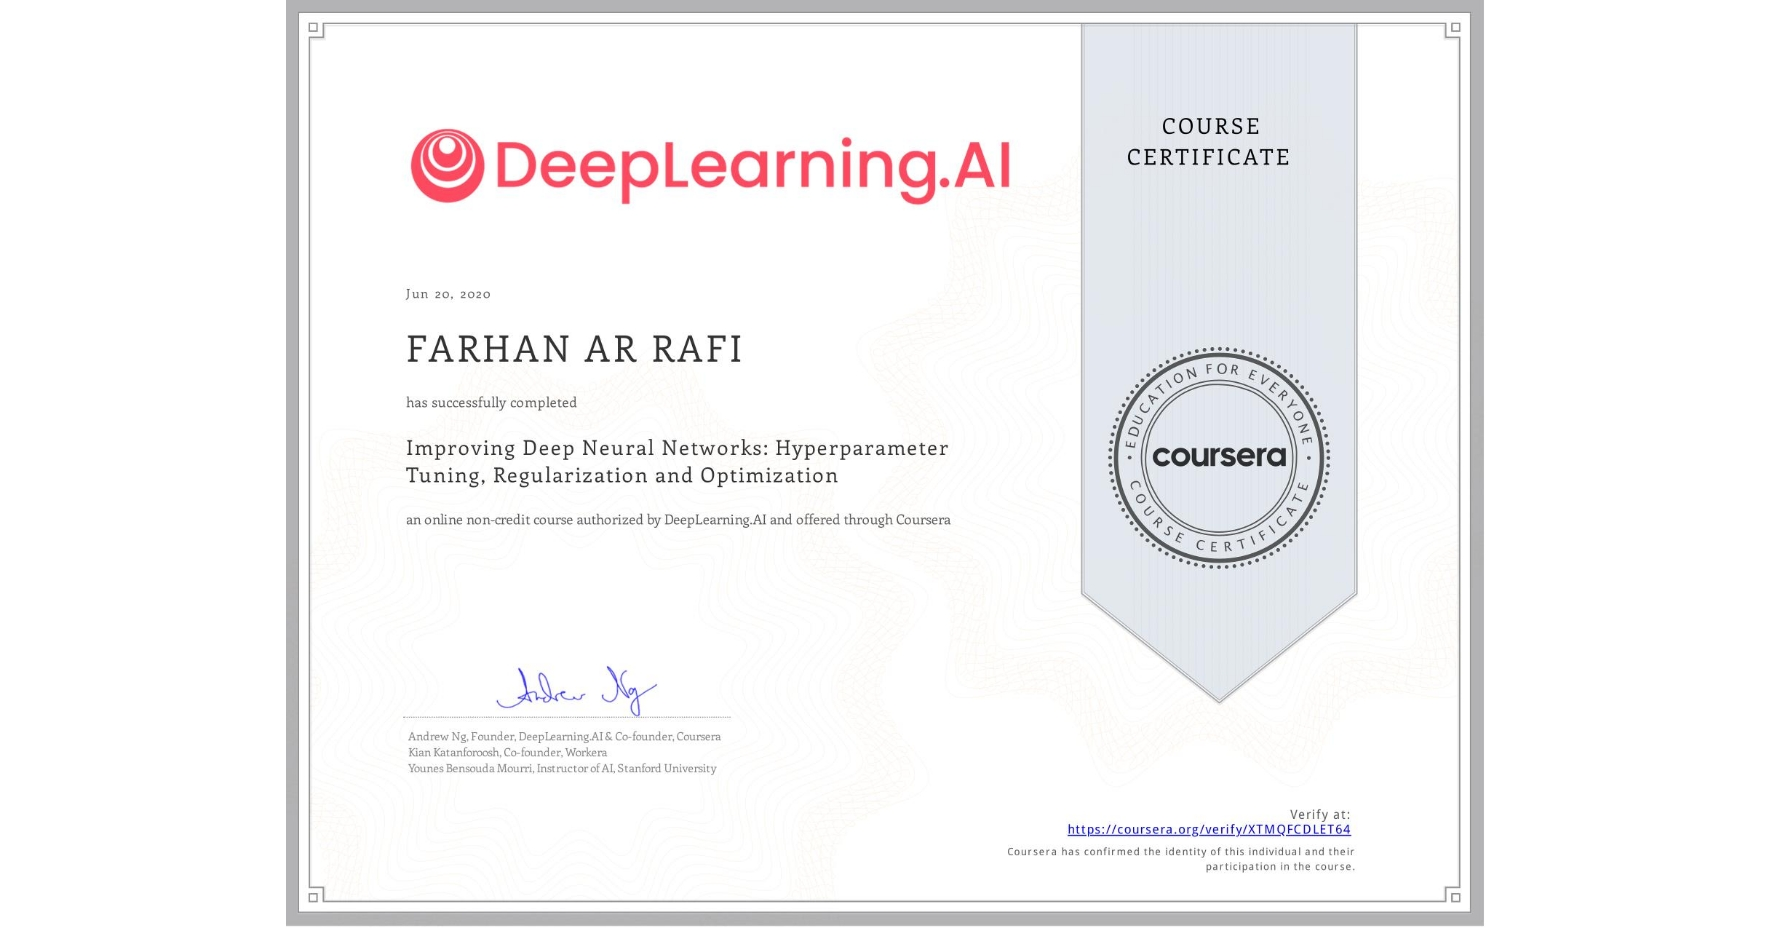 View certificate for FARHAN AR  RAFI, Improving Deep Neural Networks: Hyperparameter tuning, Regularization and Optimization, an online non-credit course authorized by DeepLearning.AI and offered through Coursera